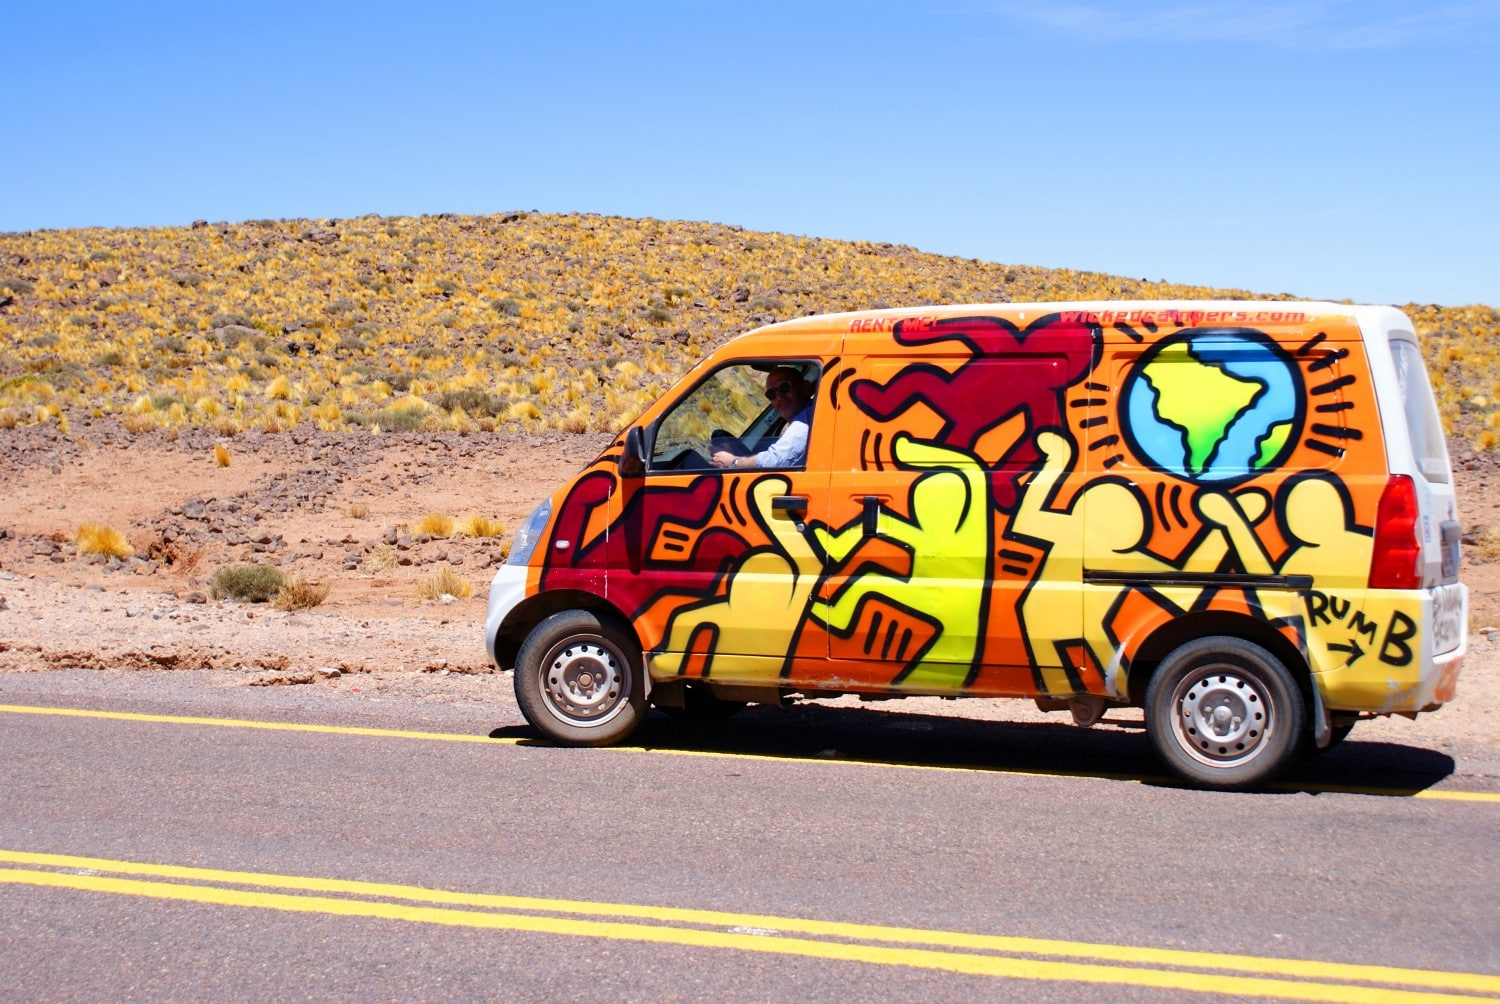 Campervan in the Atacama Desert